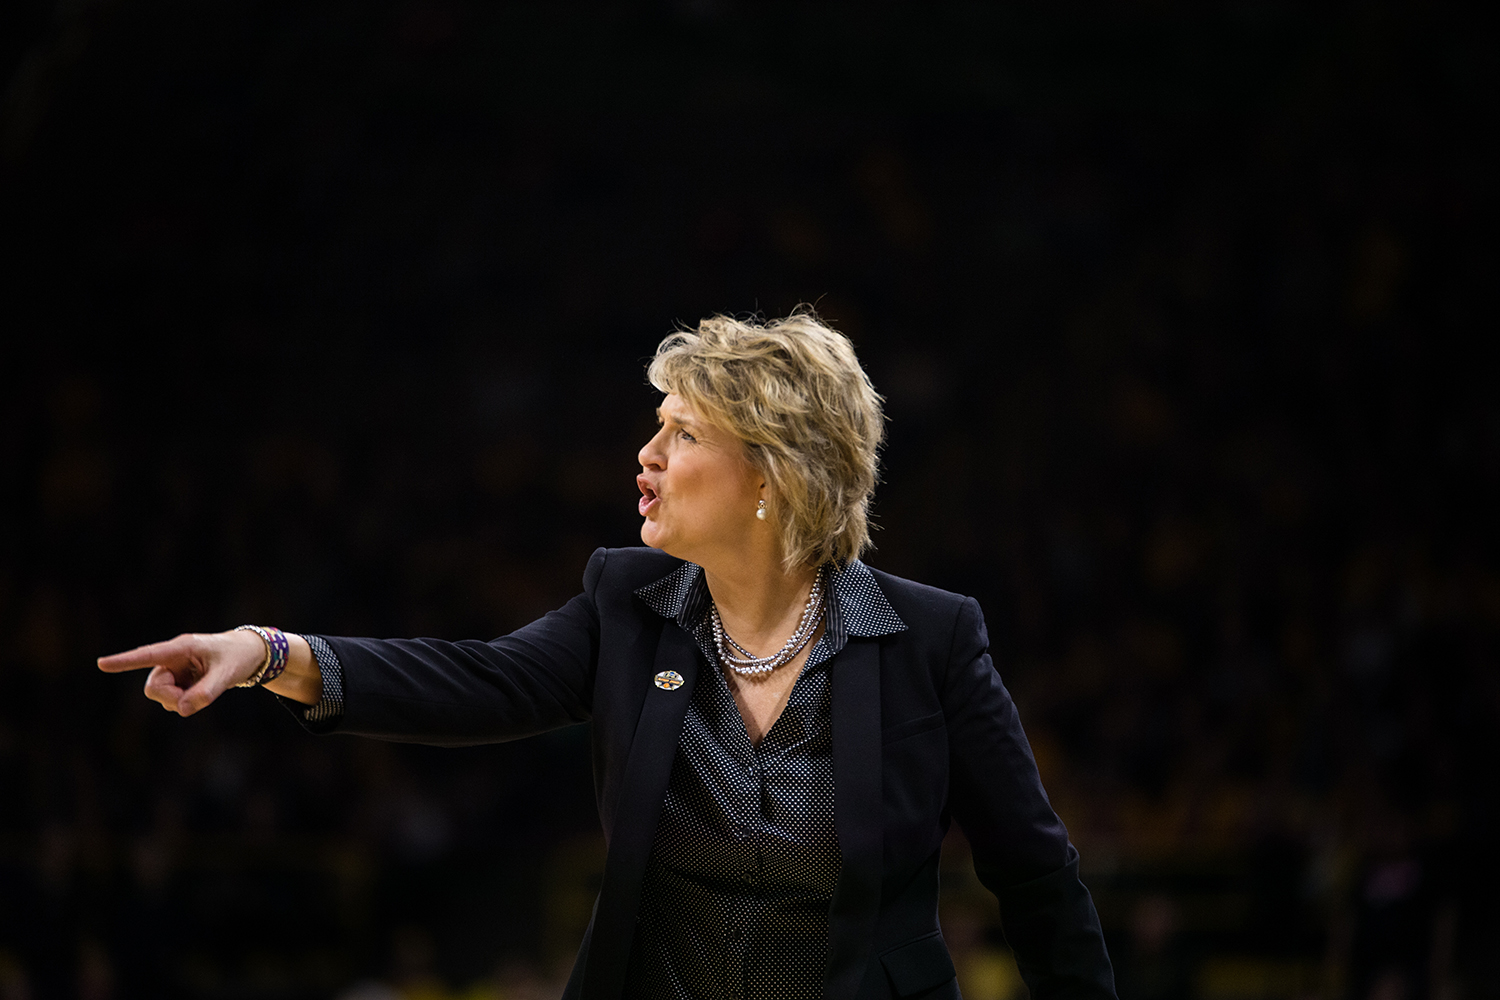 Iowa+head+coach+Lisa+Blunder+yells+at+her+team+during+the+Iowa%2FMissouri+NCAA+Tournament+second+round+women%E2%80%99s+basketball+game+in+Carver-Hawkeye+Arena+in+Iowa+City%2C+Iowa+on+Sunday%2C+March+24%2C+2019.+The+Hawkeyes+defeated+the+Tigers+68-52.